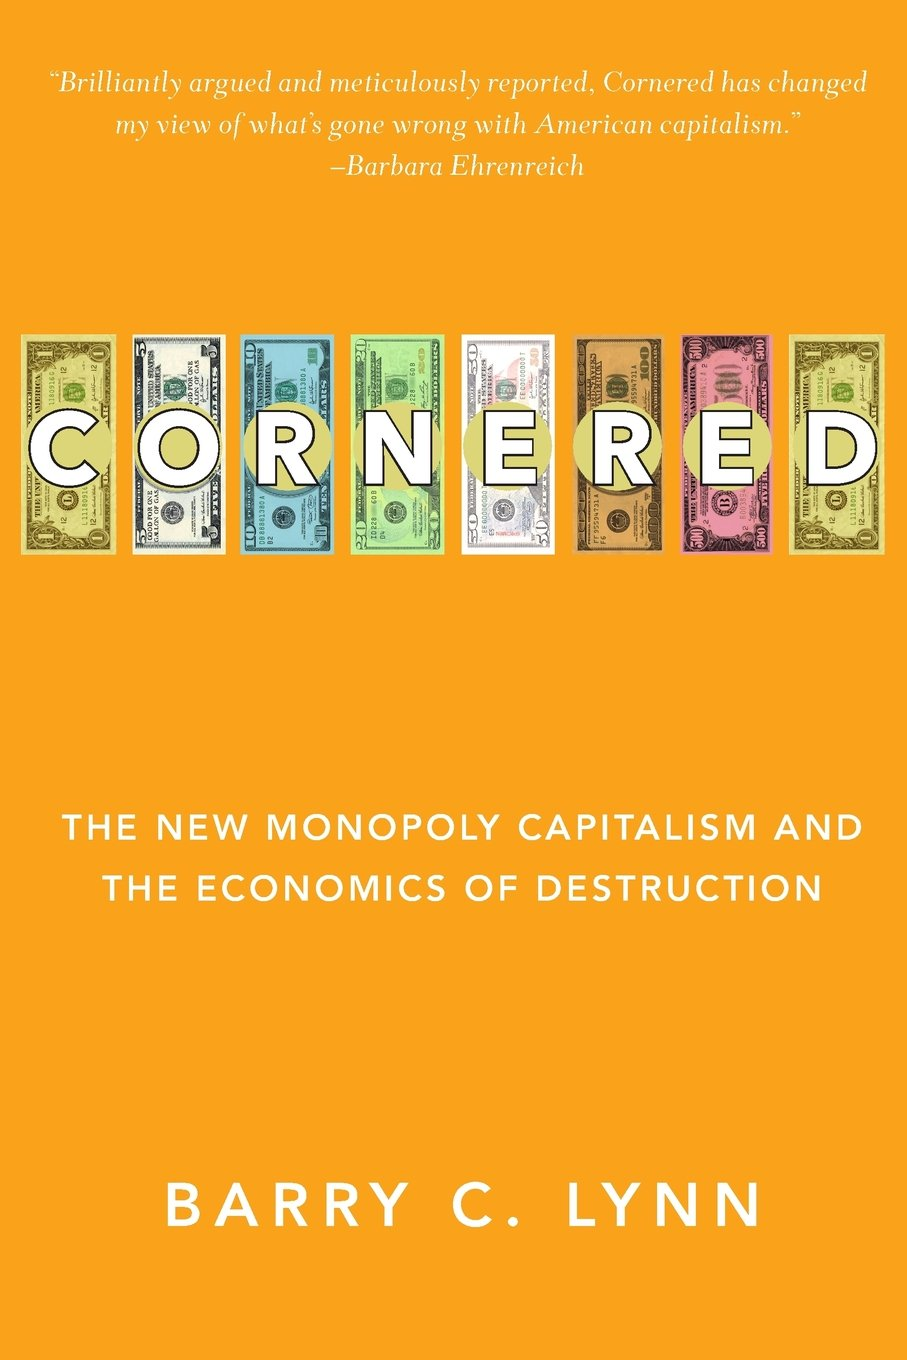 Cornered: The New Monopoly Capitalism and the Economics of Destruction: Amazon.es: Lynn, Barry C.: Libros en idiomas extranjeros